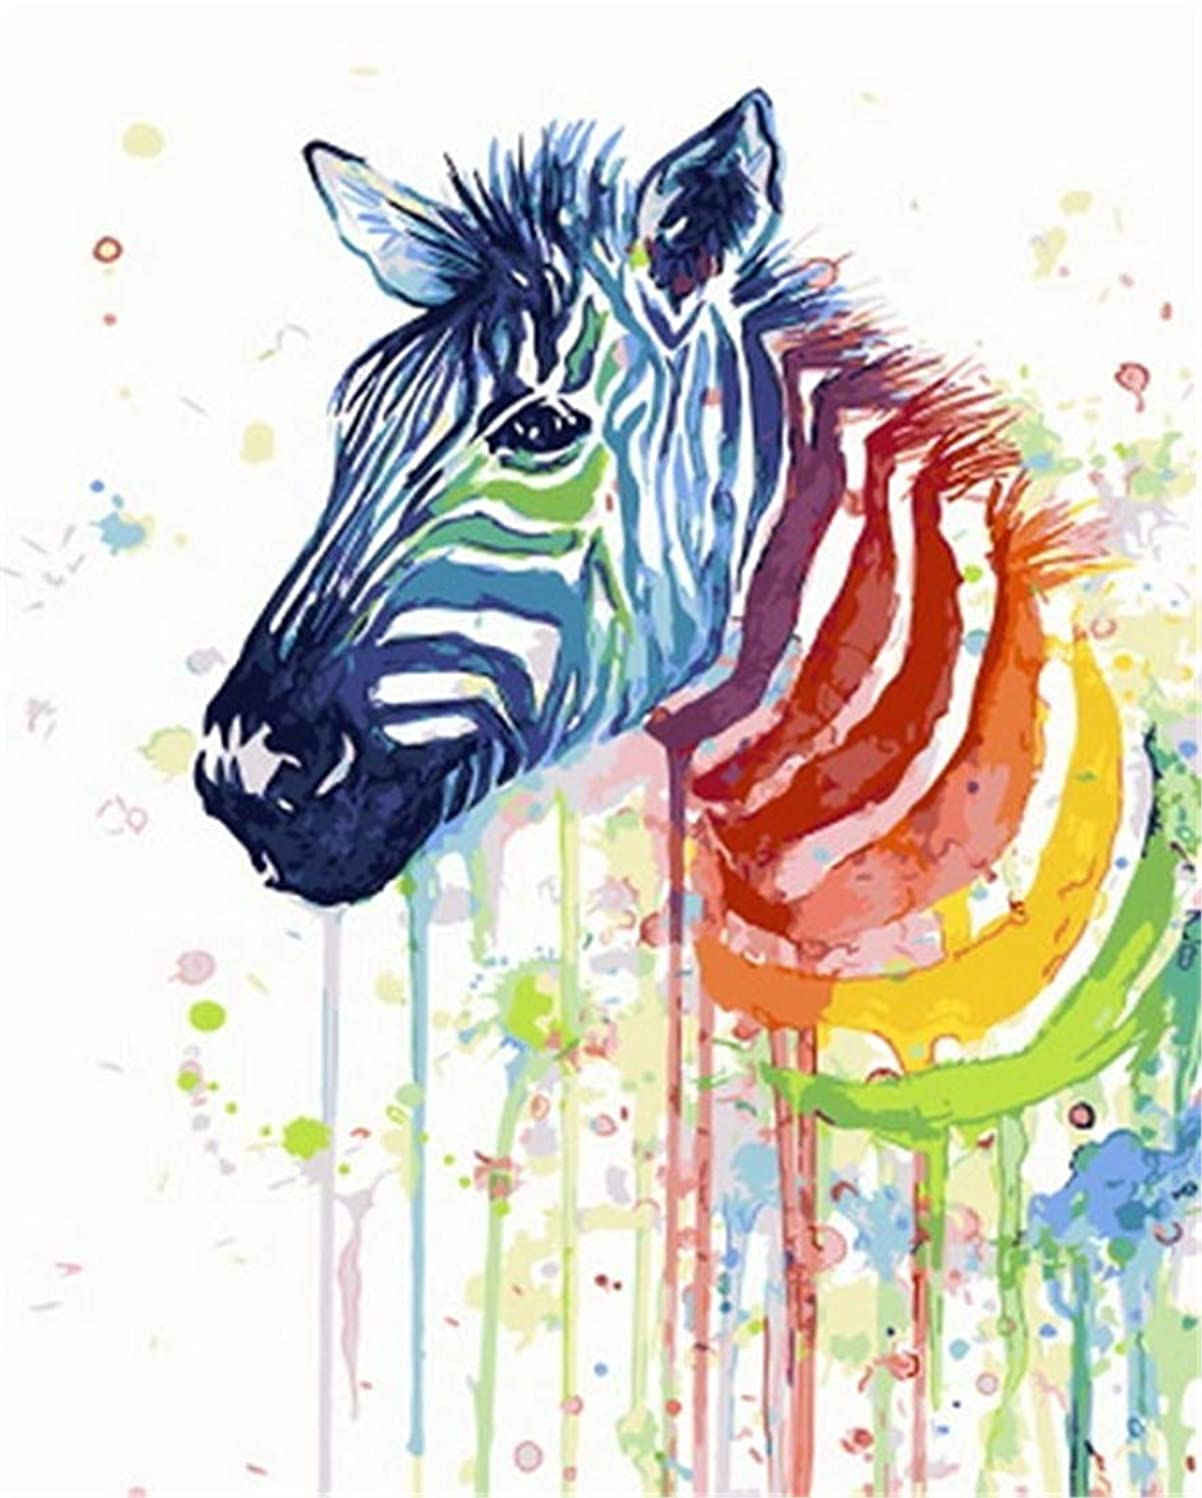 DIY Oil Painting Paint by Number Kit for Kids Adults Beginner 16x20 inch - Color Zebra, Drawing with Brushes Christmas Decor Decorations Gifts (Frame) (Without Frame)